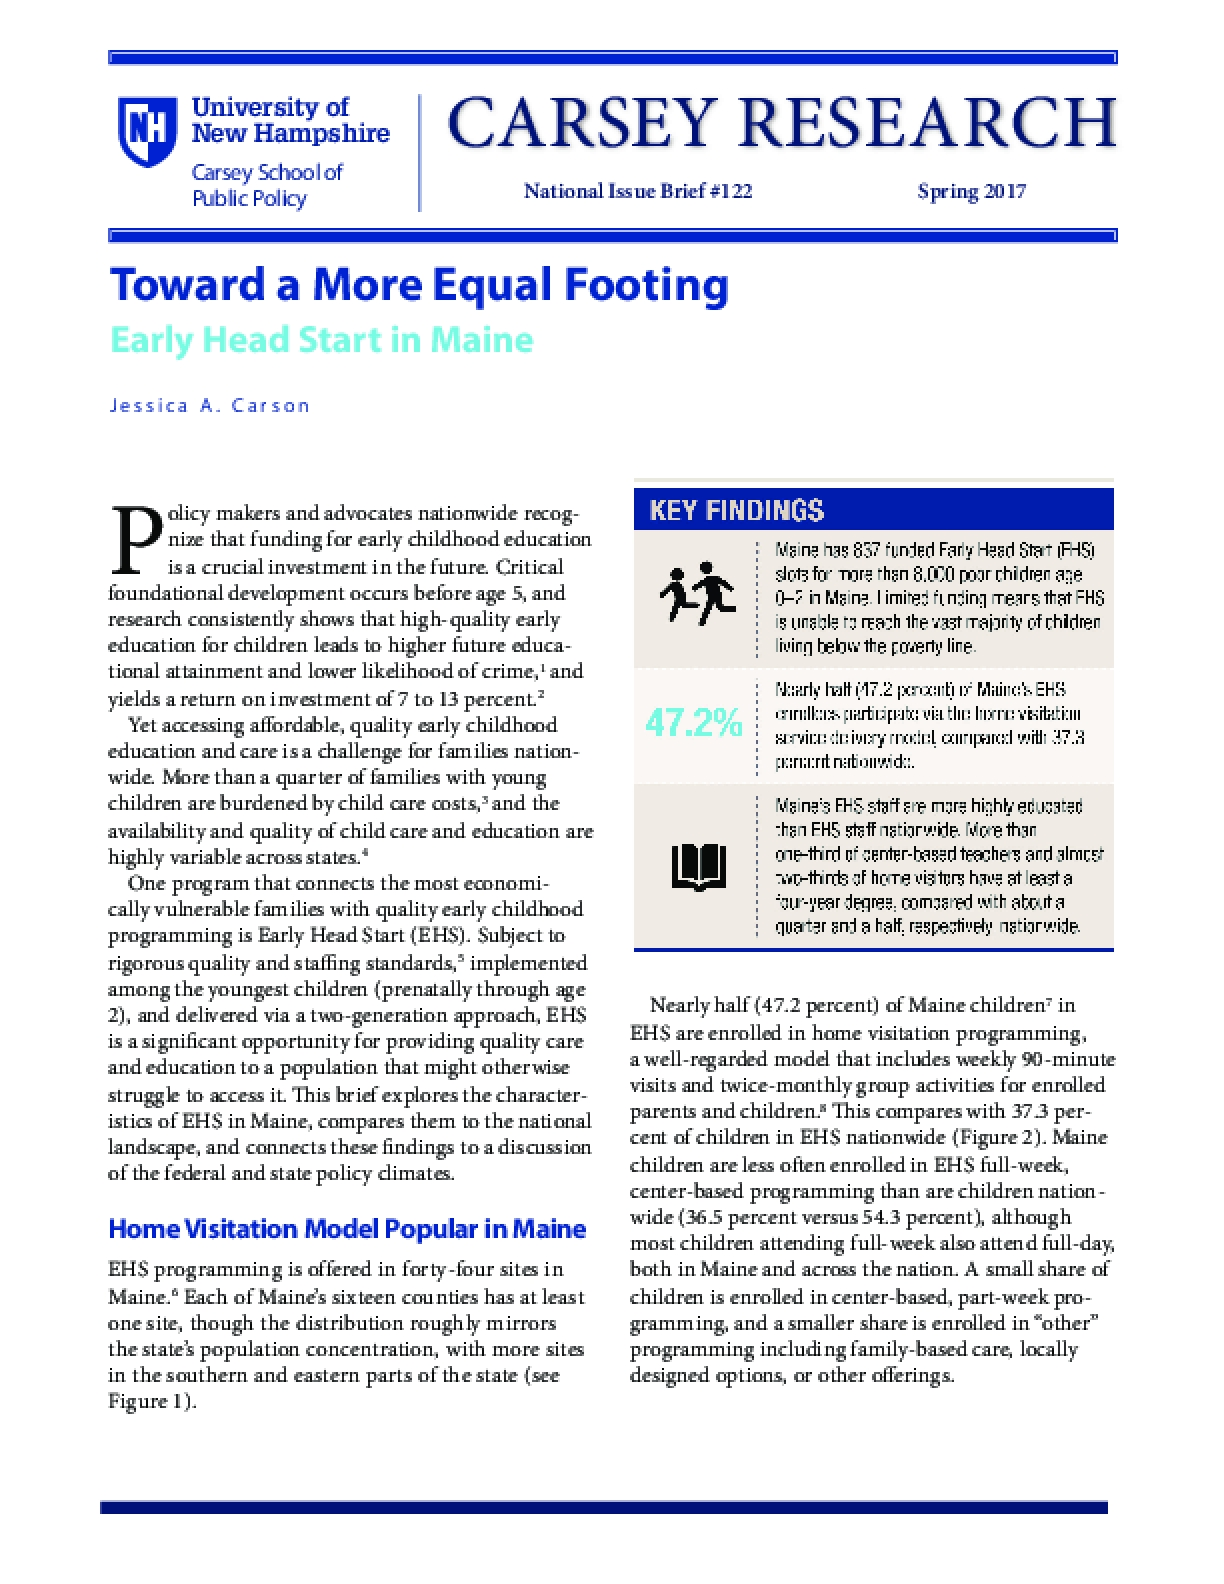 Toward a More Equal Footing